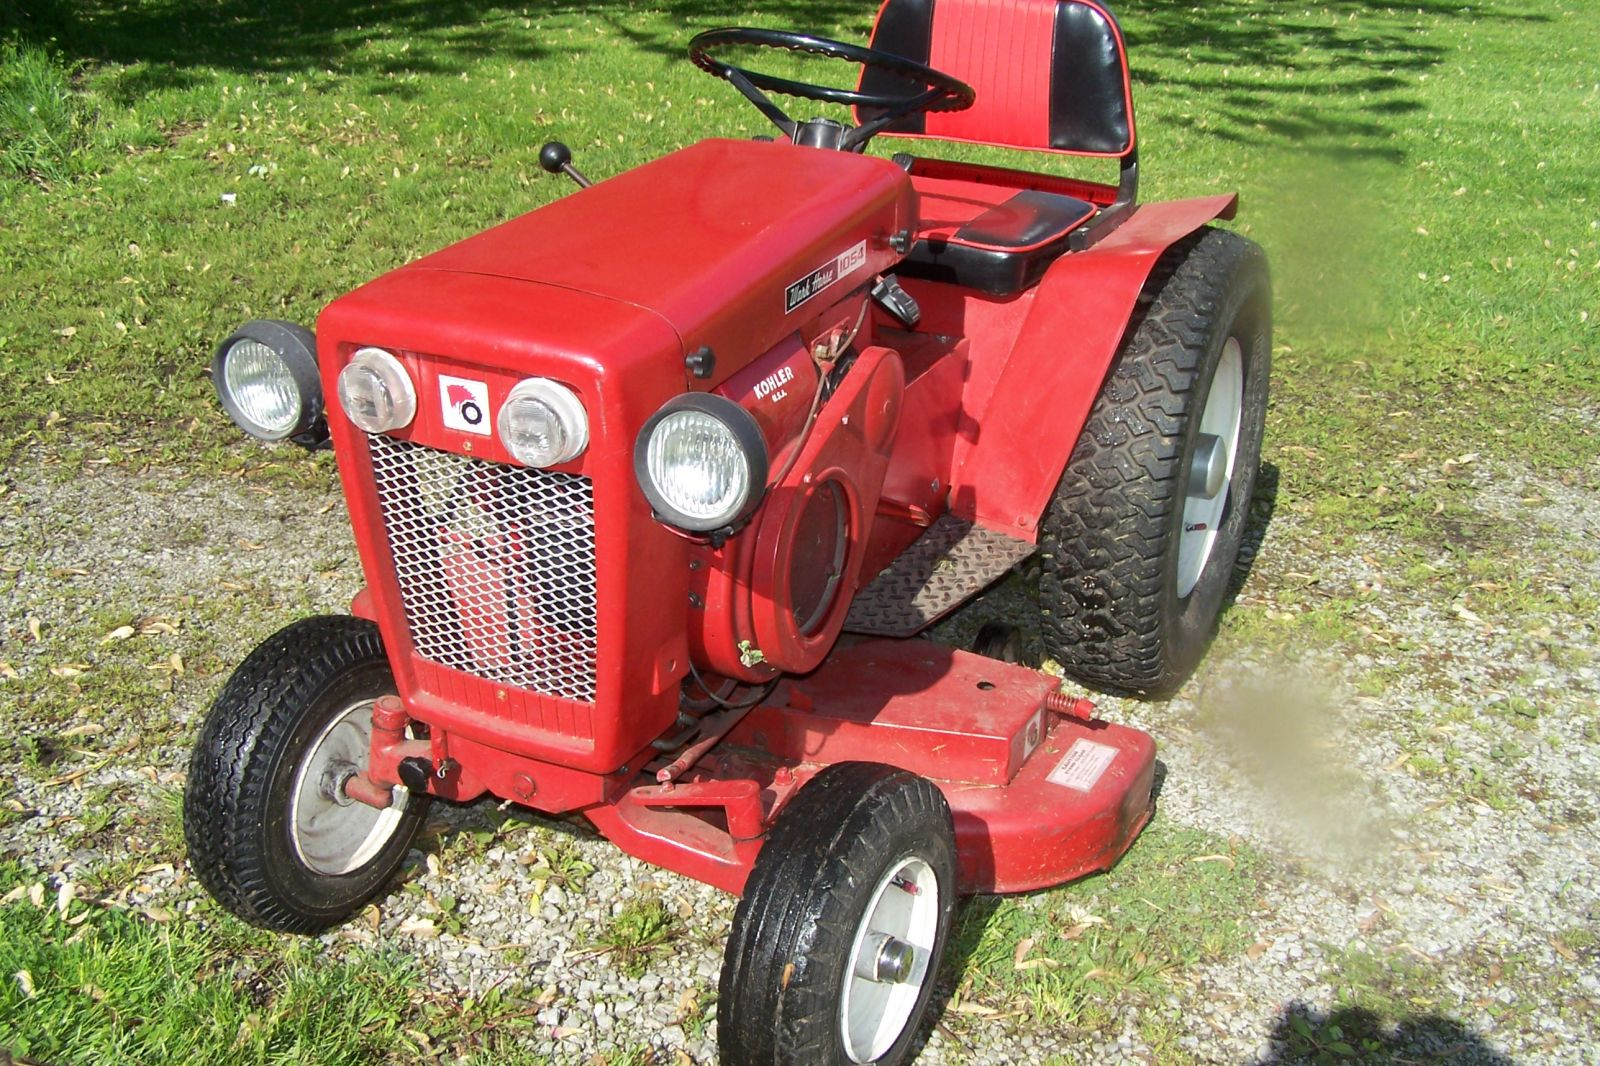 1964 Wheel Horse Tractor : Wheel horse tractor with inch mower deck